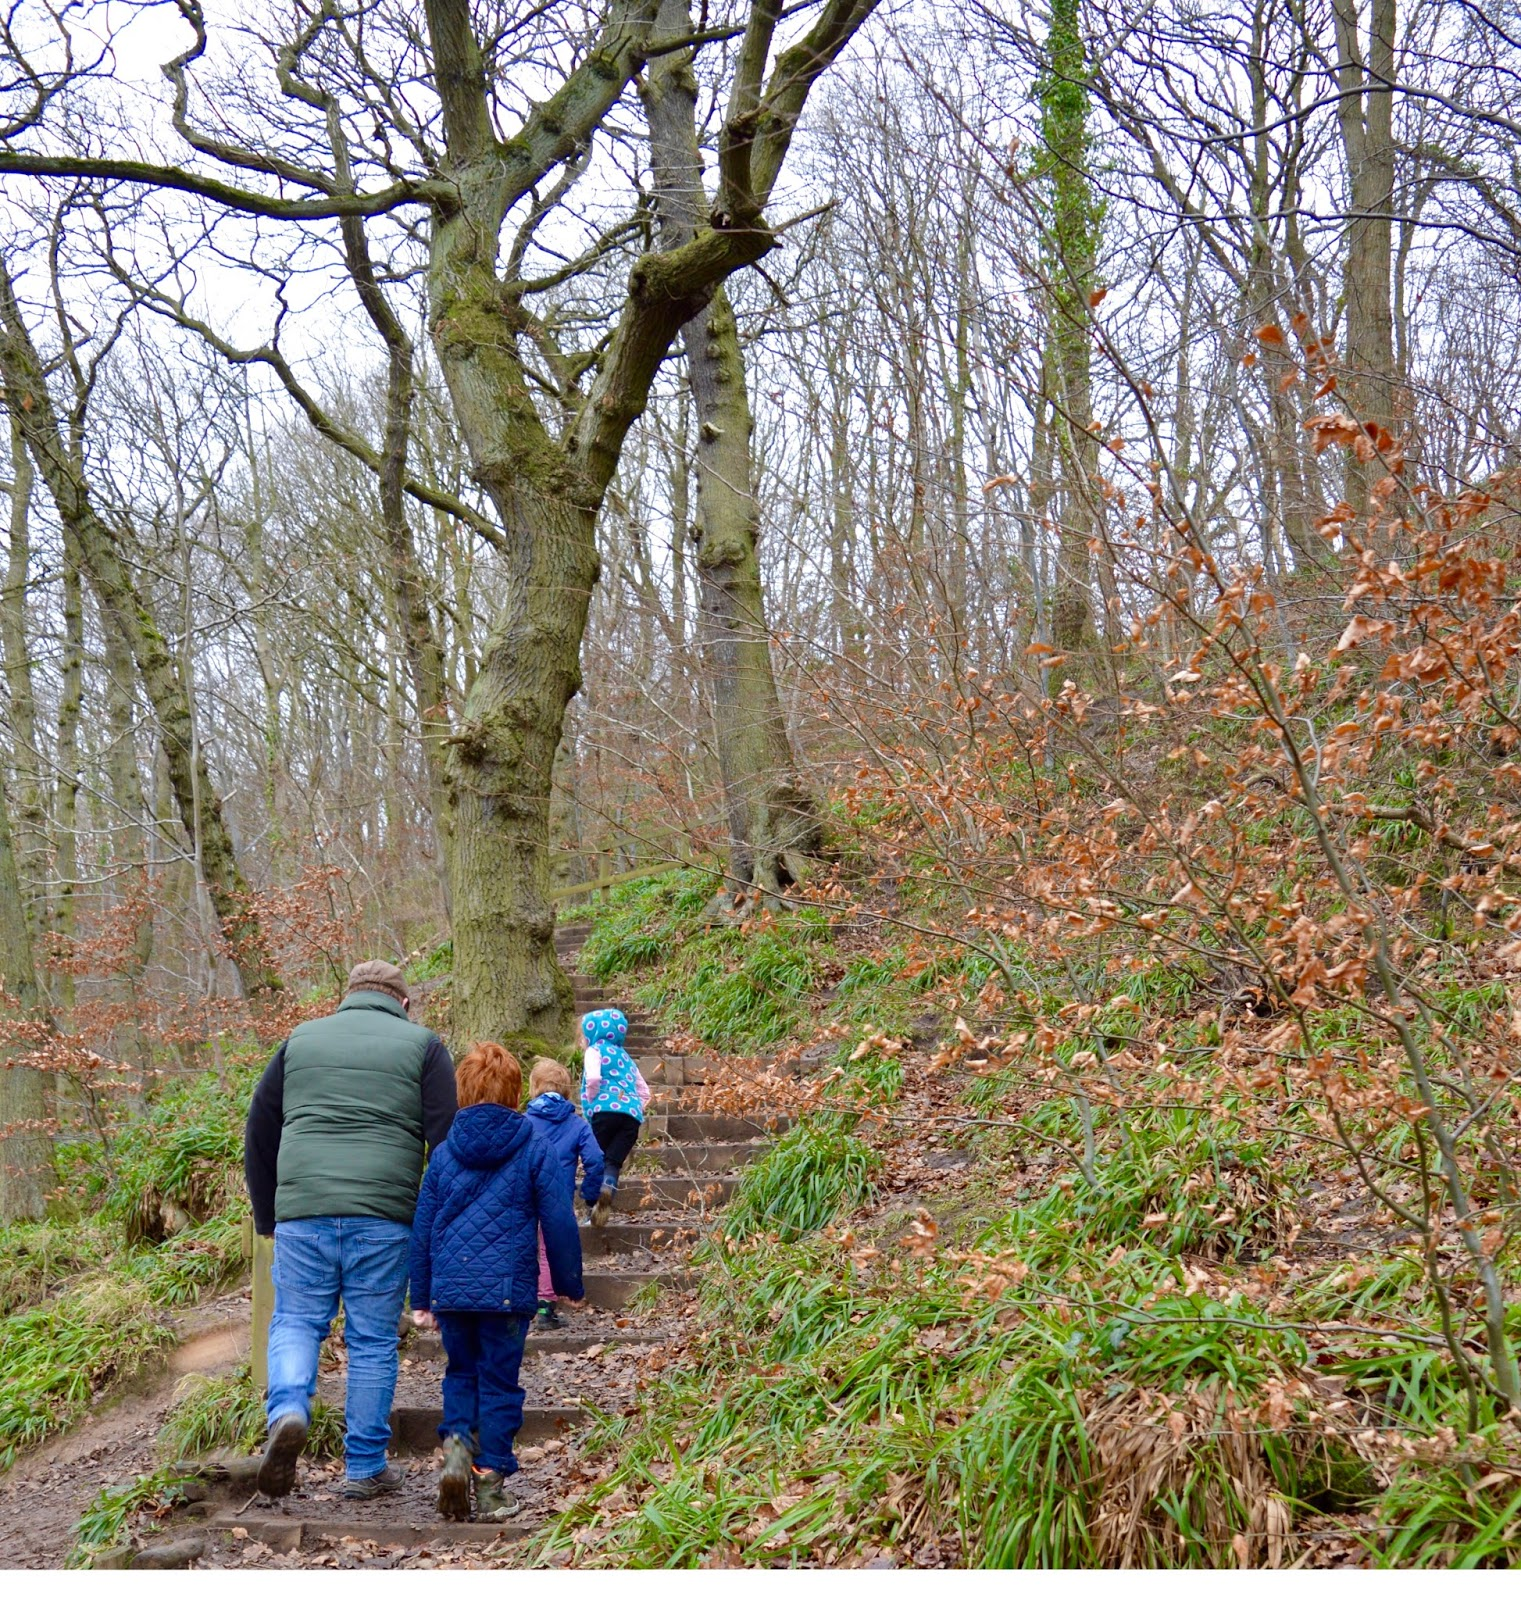 Our Visit to Plessey Woods - A FREE day out in Northumberland. It was very muddy and the perfect chance for Harry to put his GORE-TEX shoes through their paces - river steps up to meadow